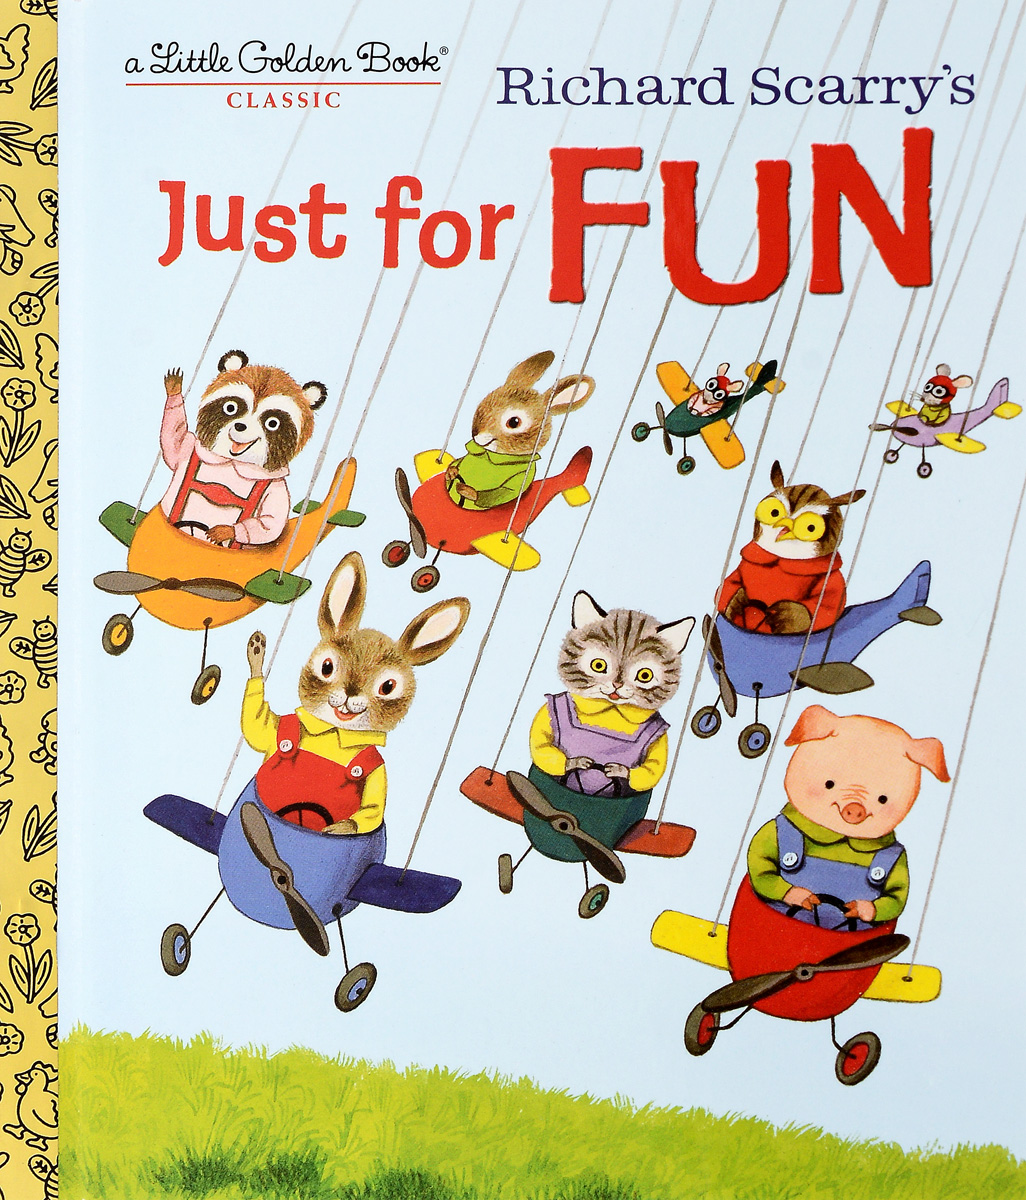 Richard Scarry's Just for Fun bailey richard wagner prelude & transfiguration from tristan and isolde